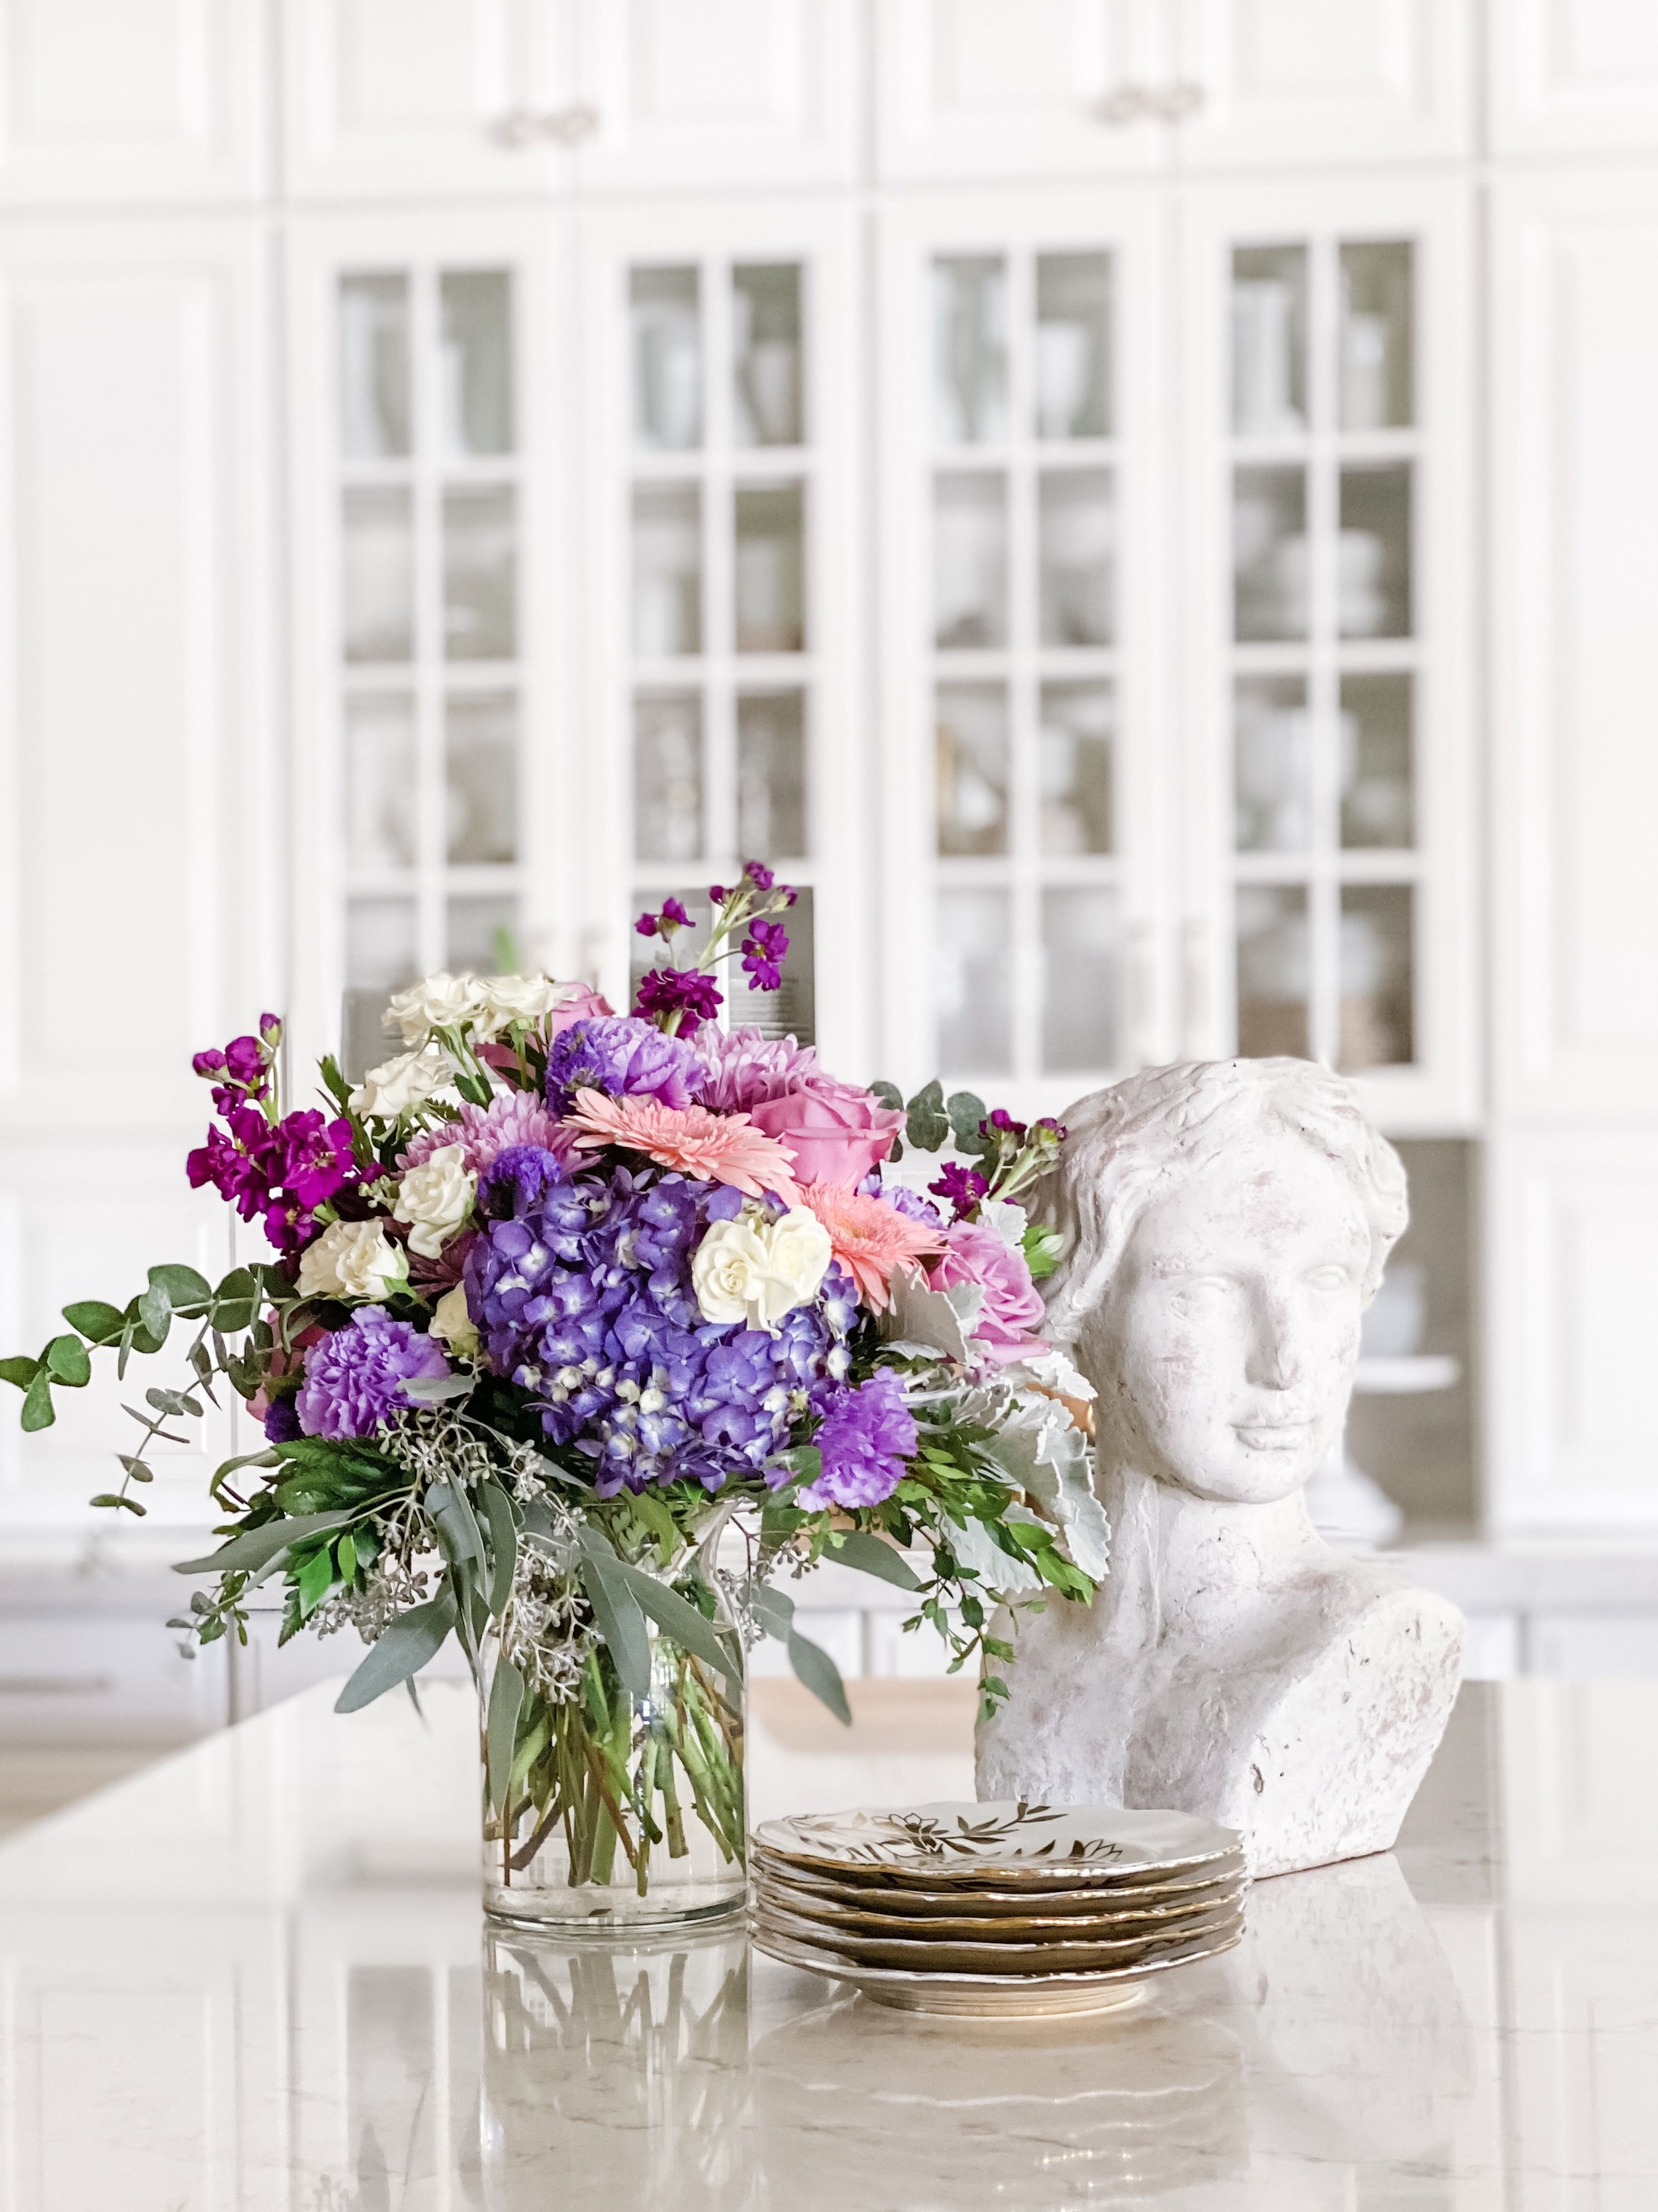 Magnificent Mauves Bouquet in 2020 Bouquet, Fall